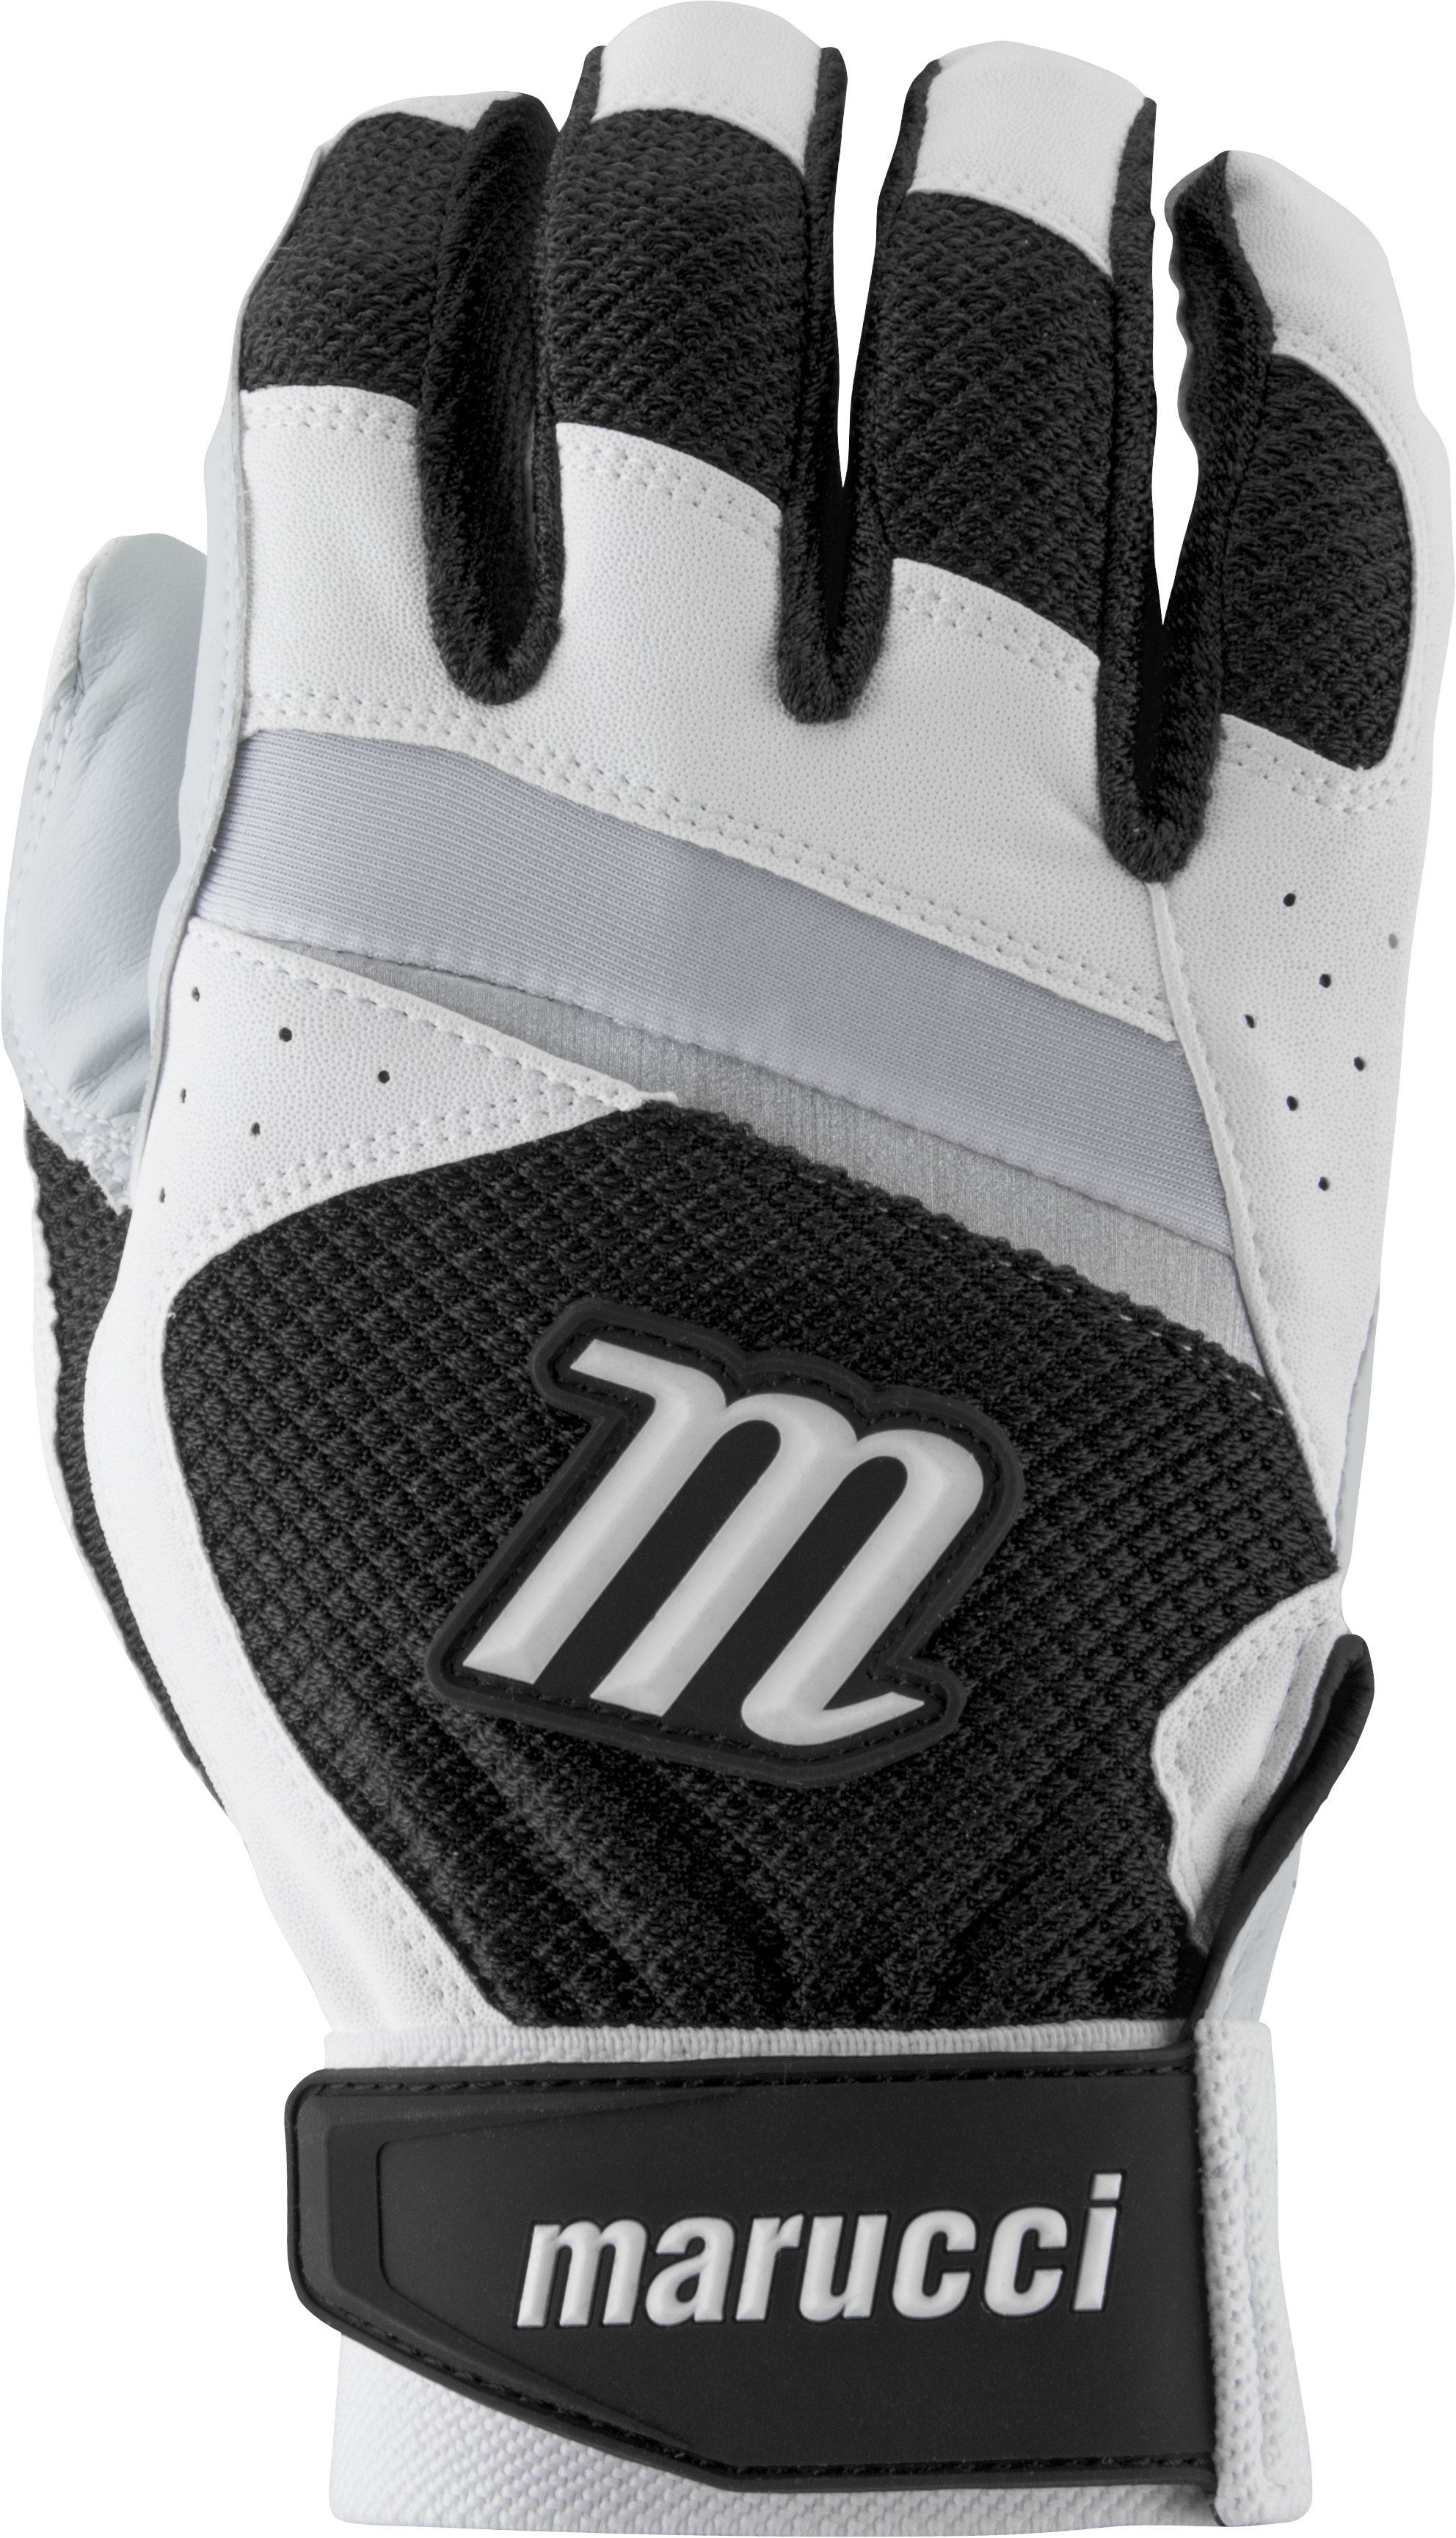 marucci-code-adult-batting-gloves-1-pair-white-black-adult-medium MBGCD-WBK-AM Marucci 849817095973 2019 Model MBGCD-W/BK Consistency And Craftsmanship Commitment To Quality And Understanding